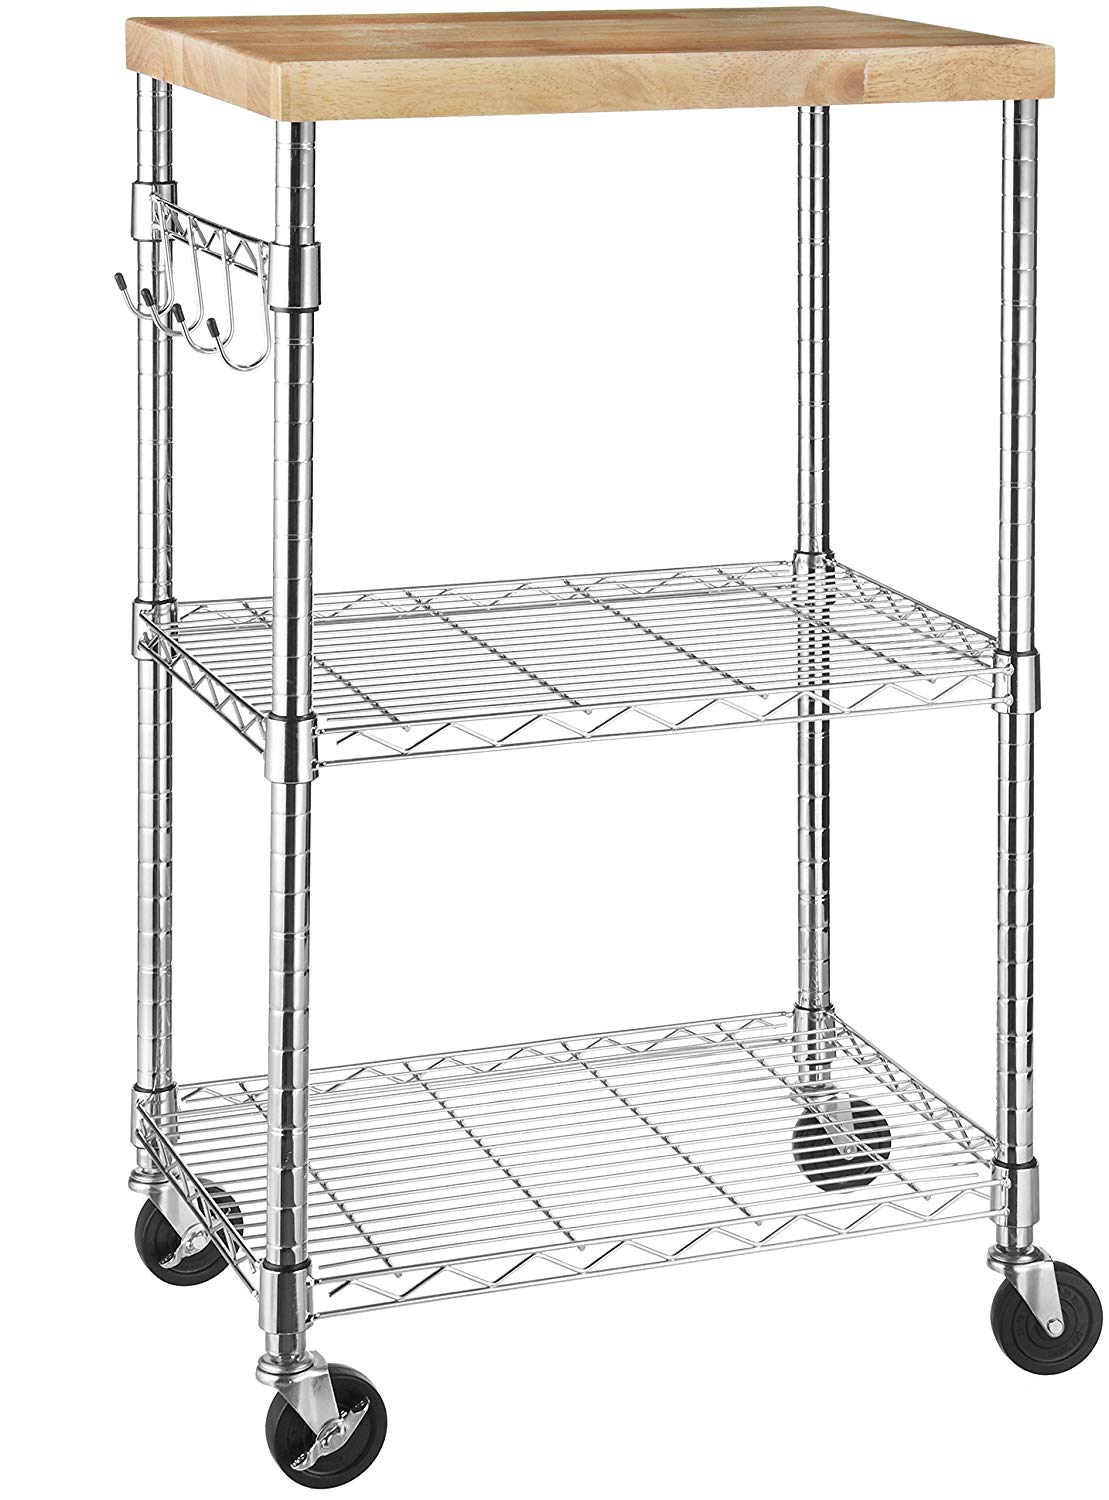 AmazonBasics Kitchen Rolling Microwave Cart on Wheels, Storage Racks